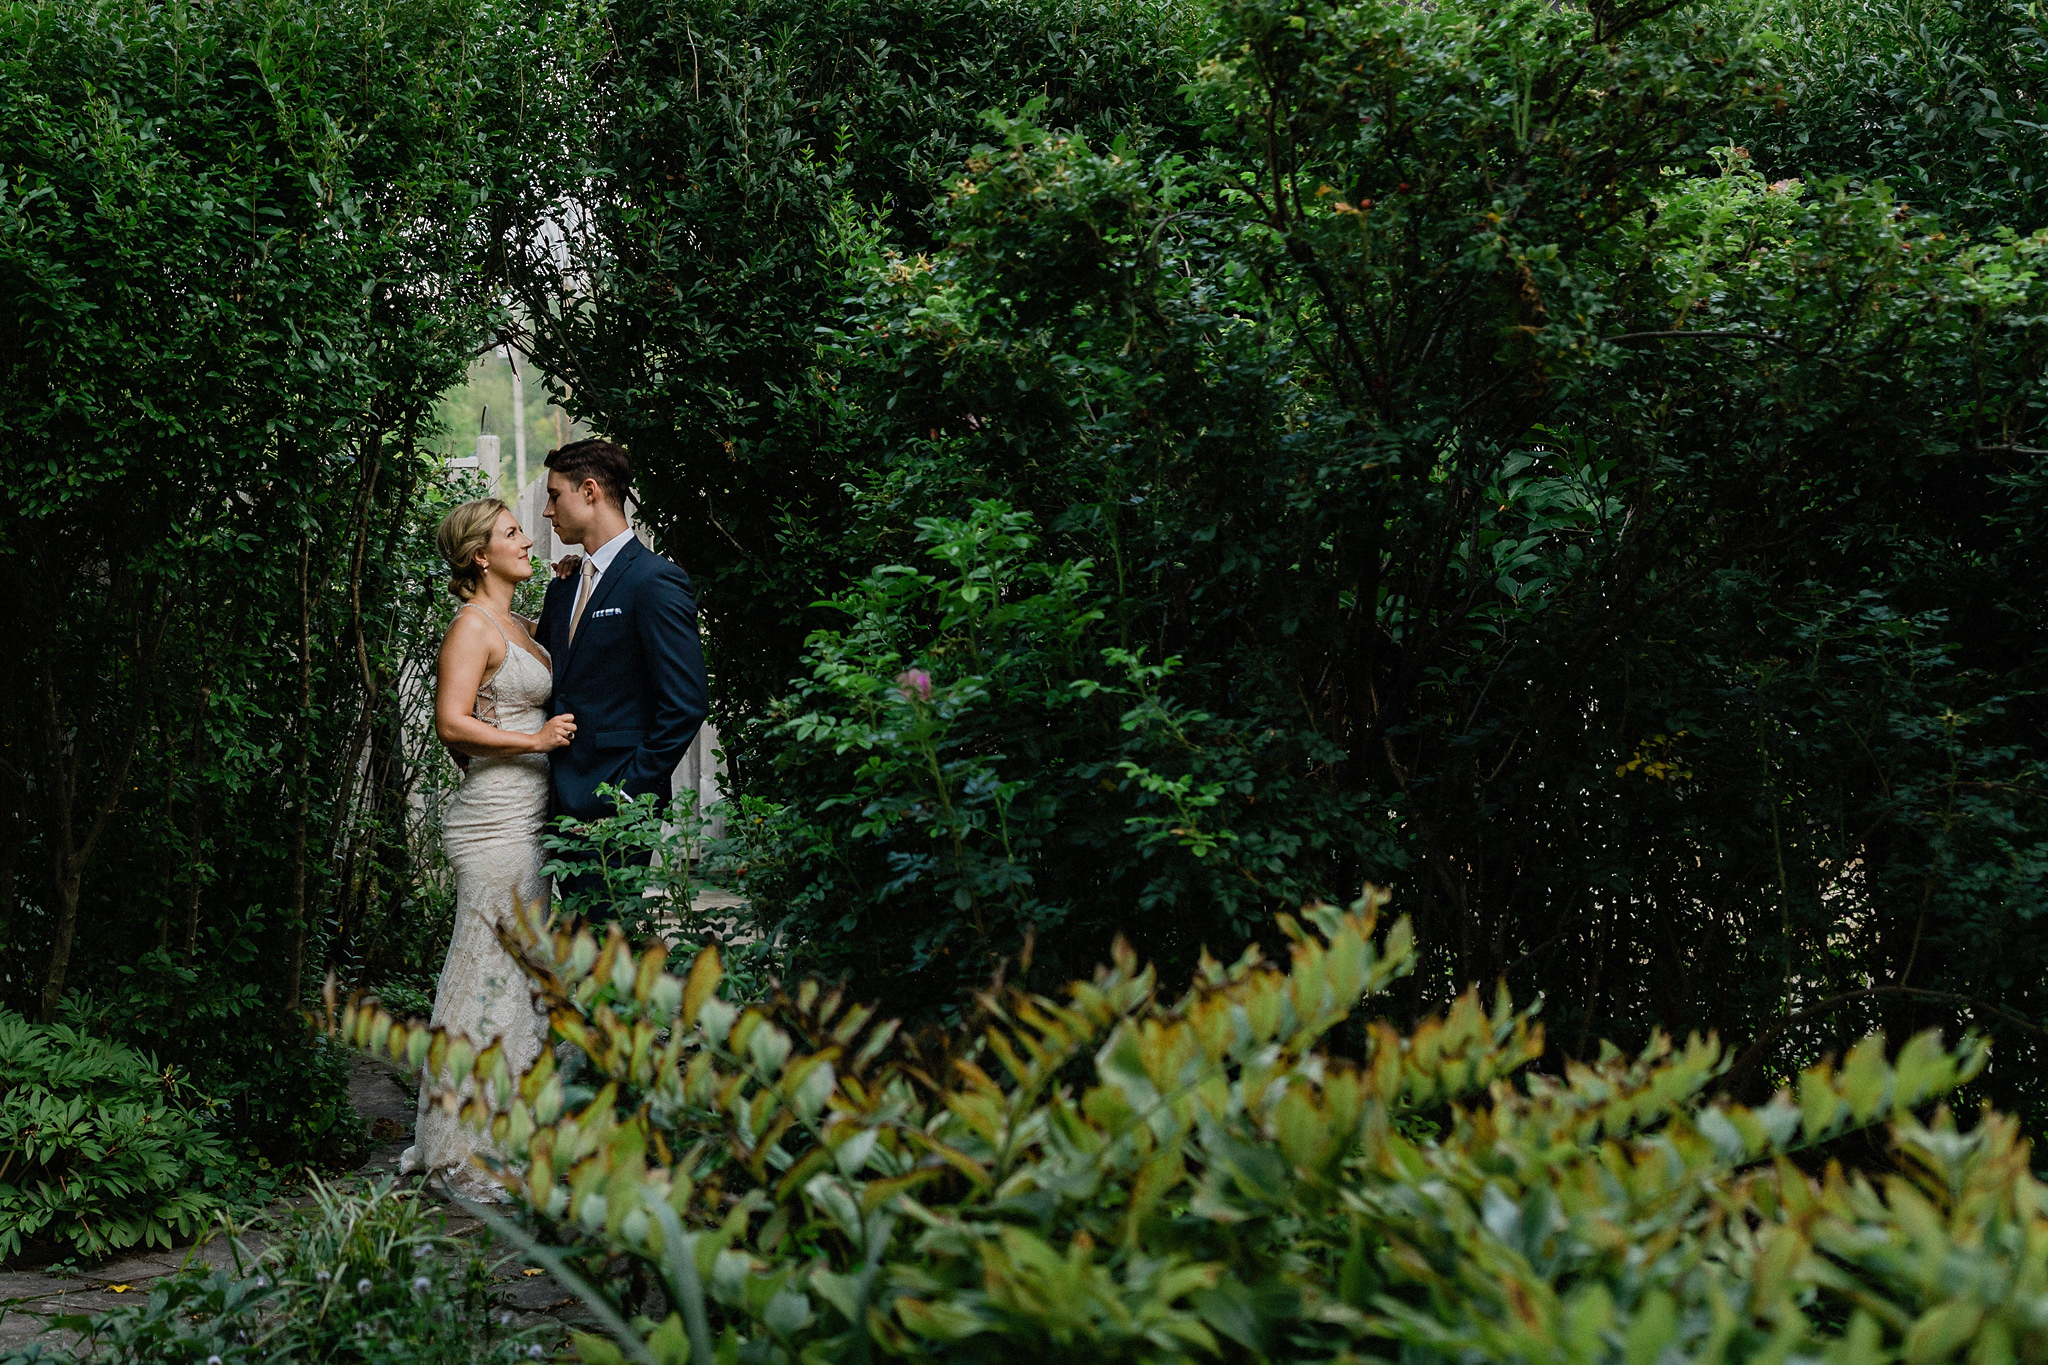 Bride and groom portraits in the magical garden at Coffin Ridge